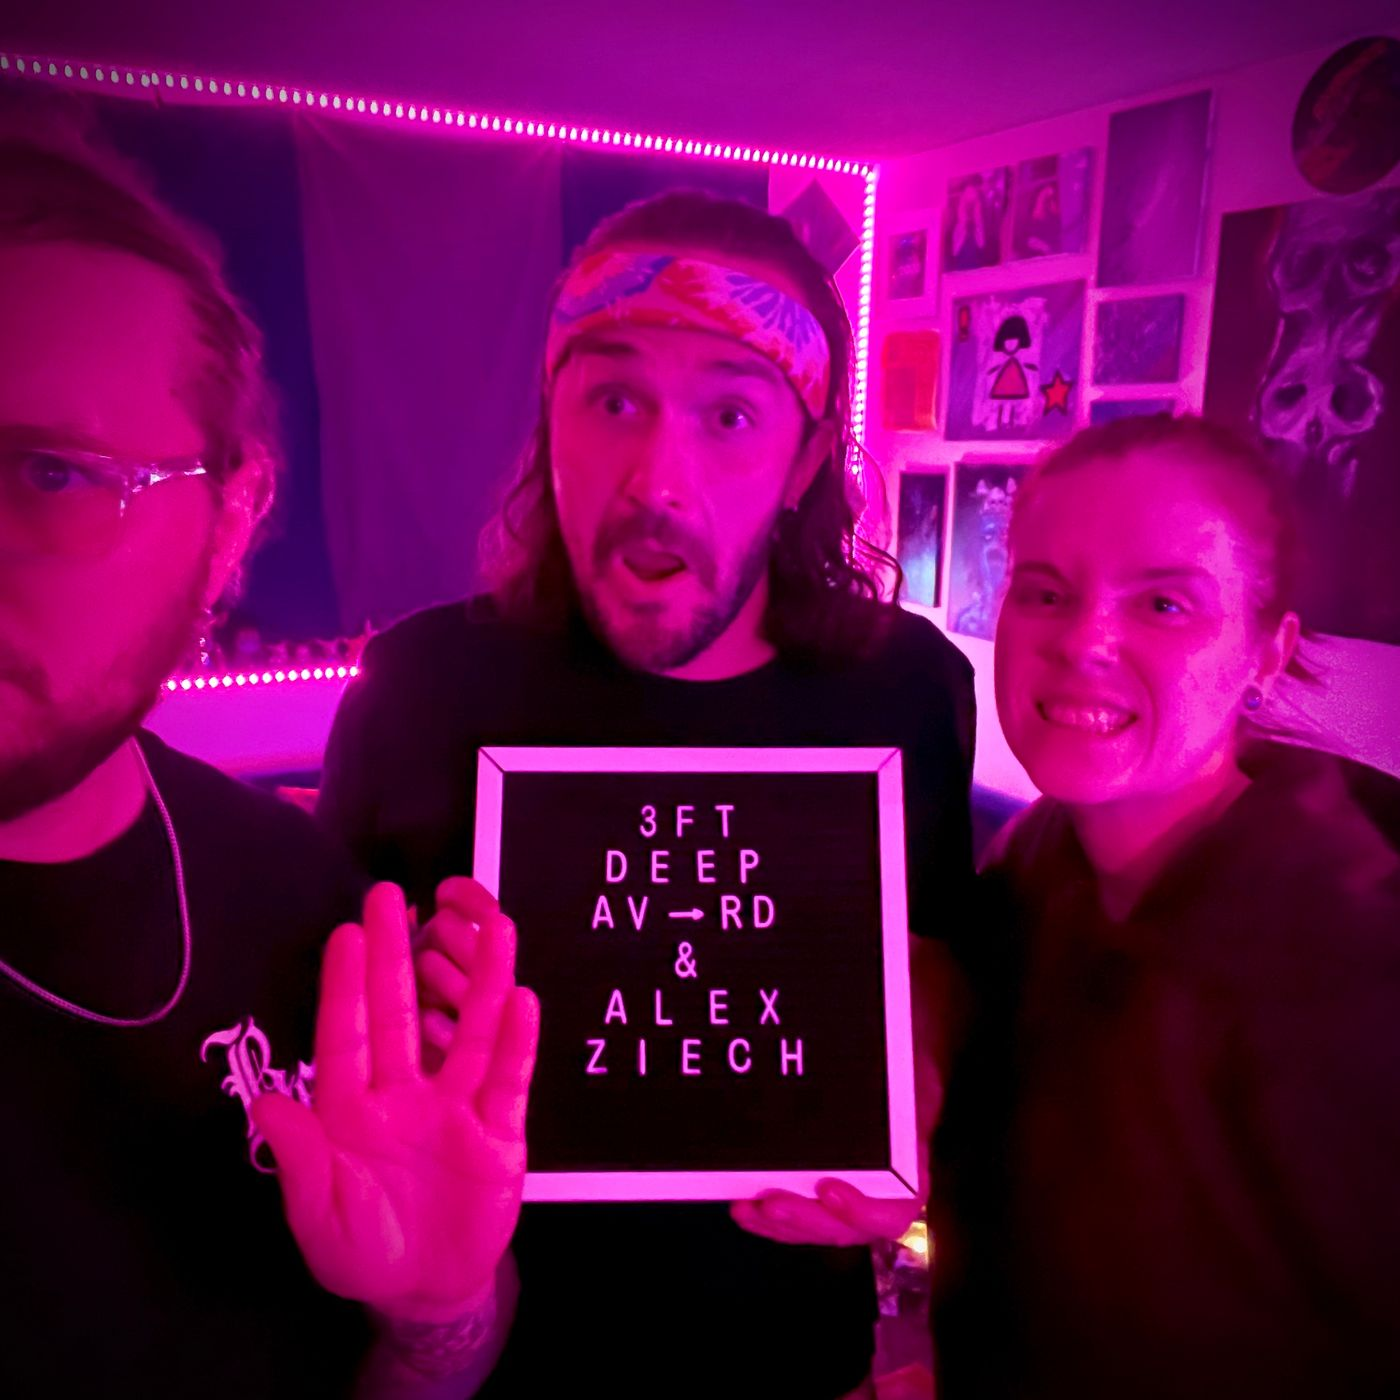 3FT Deep| EP. 95 | If you're there at 8, you're there too late (Feat. Alex Ziech)